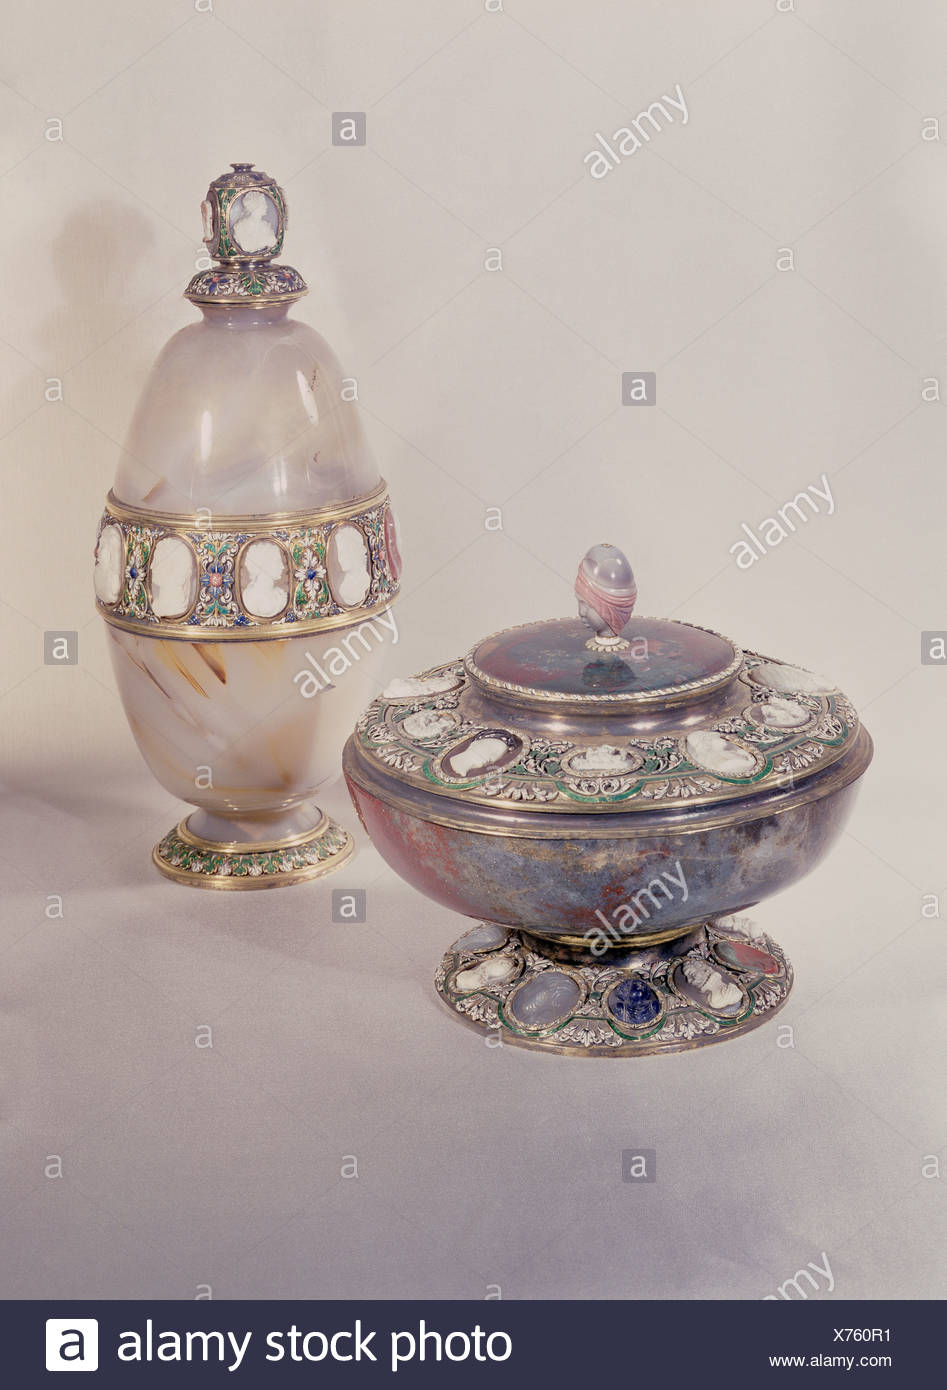 fine arts, centre piece, covered cup, bowl, silver, gilded, cameos, 16th century / 17th century, jasper, chalcedony, height of bowl: 12.5 cm, height of cup: 23 cm, Prado, Madrid, Artist's Copyright has not to be cleared - Stock Image